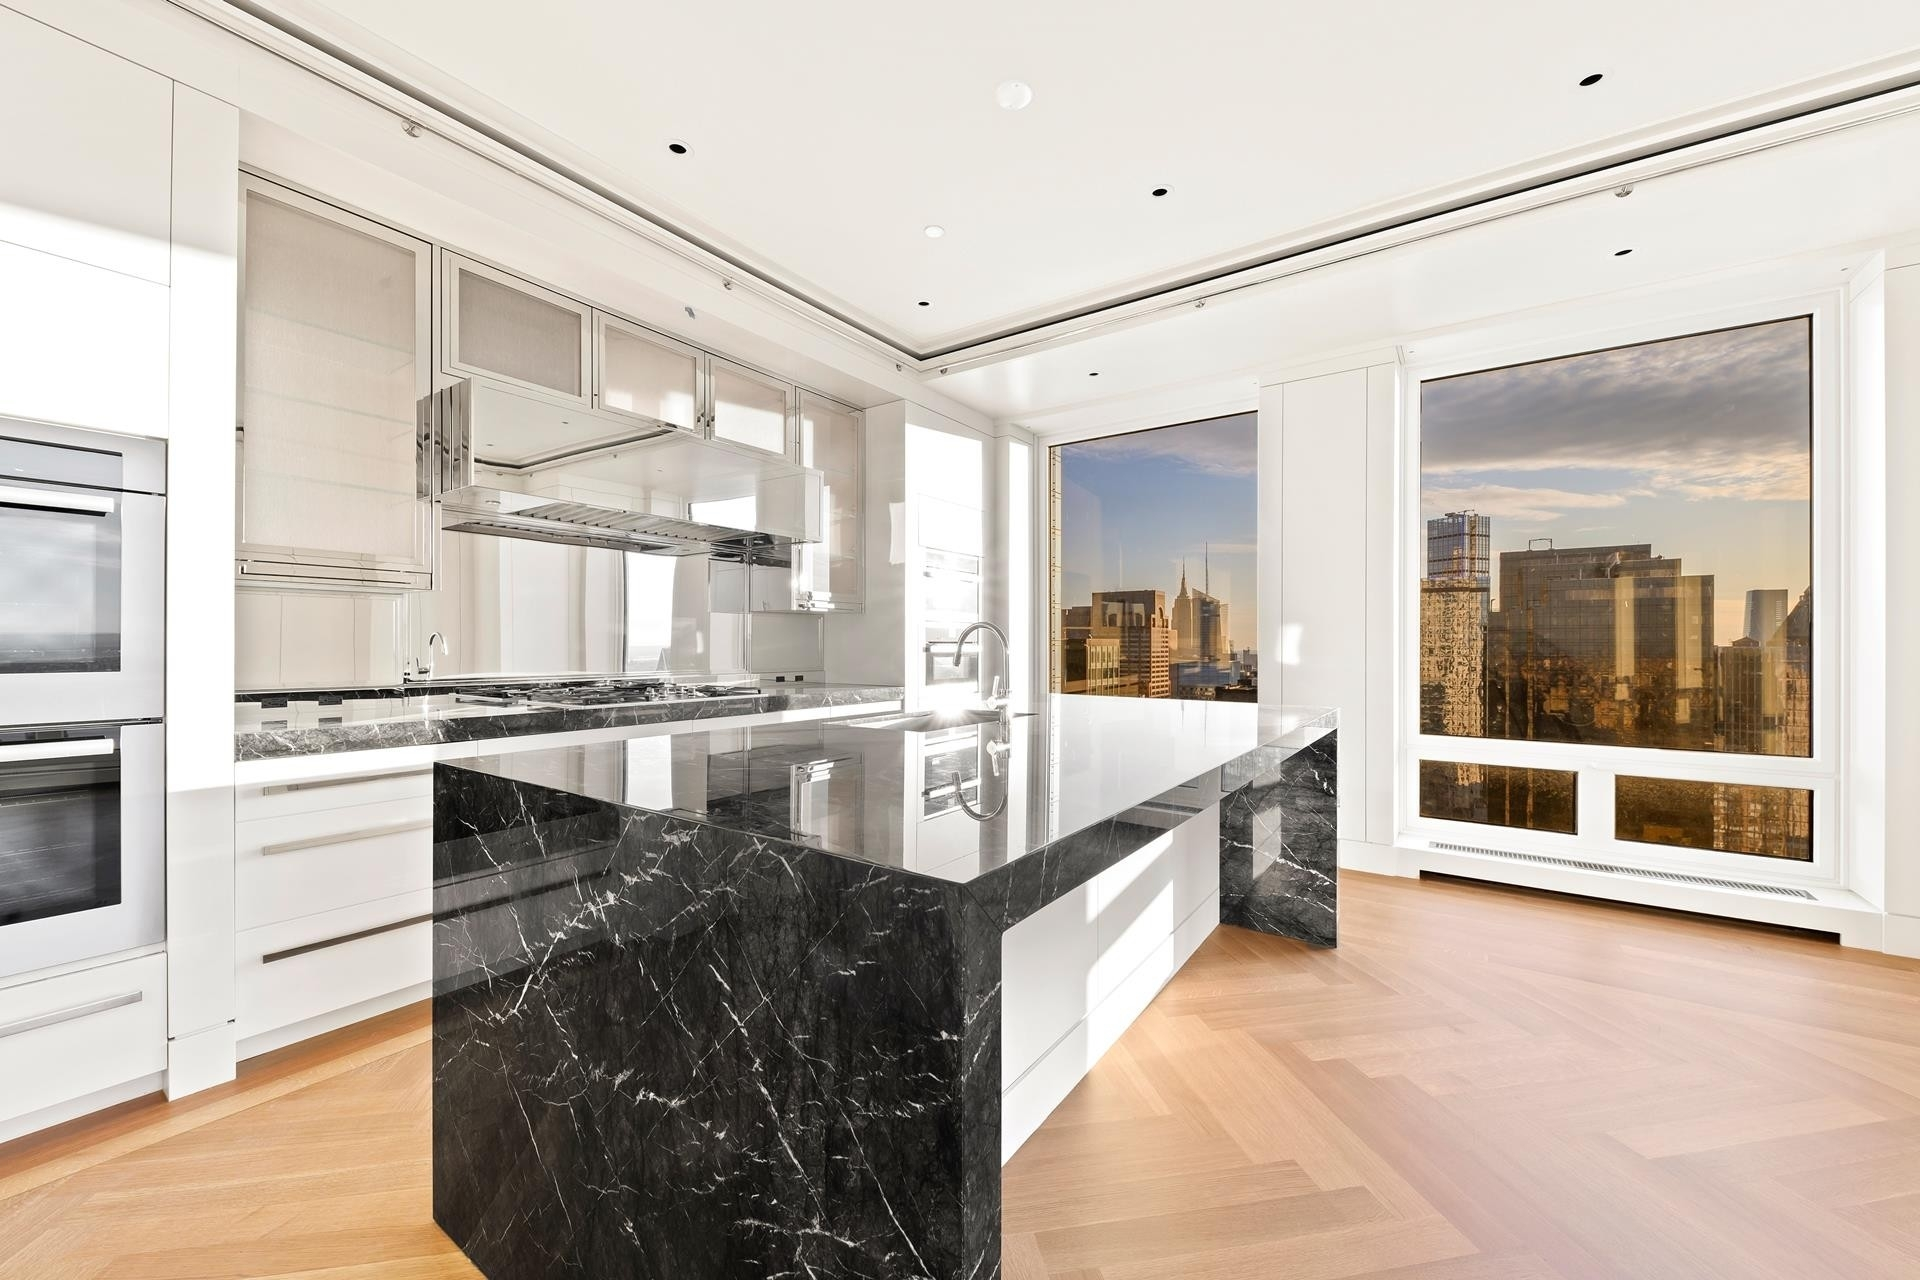 5. Condominiums for Sale at 220 CPS, 220 CENTRAL PARK S, 54/55A Central Park South, New York, NY 10019